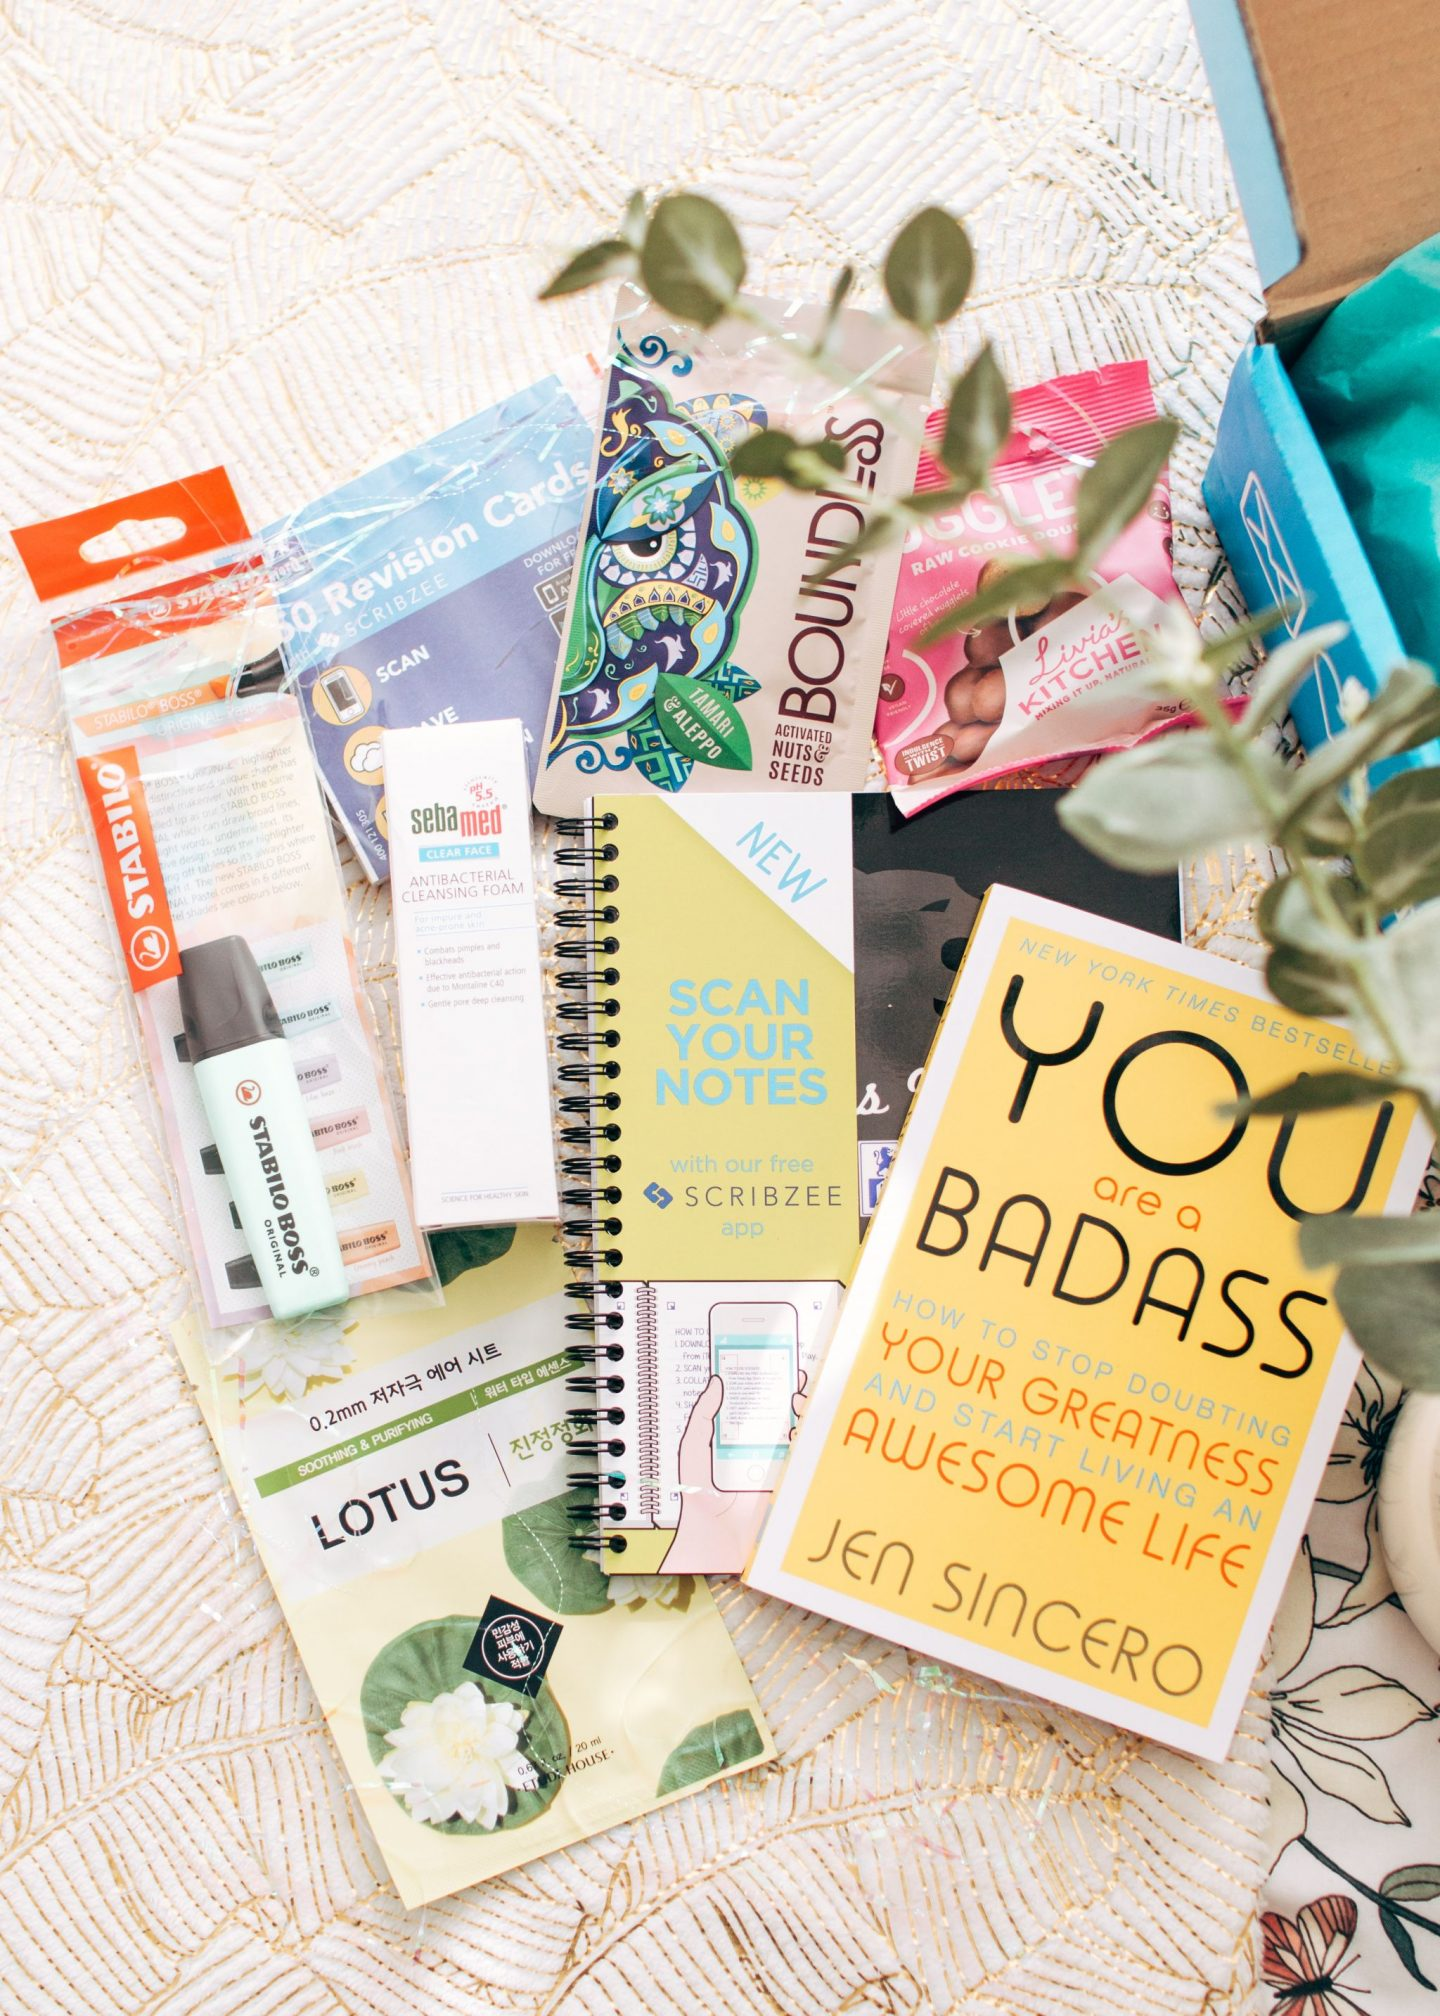 forever september, the unibox march edition, exam season, university, the unibox, subscription box, skincare, stationery, food, snacks, livia's kitchen, boundless seeds, revision cards, notebook, face mask, you are a badass, book, flatlay